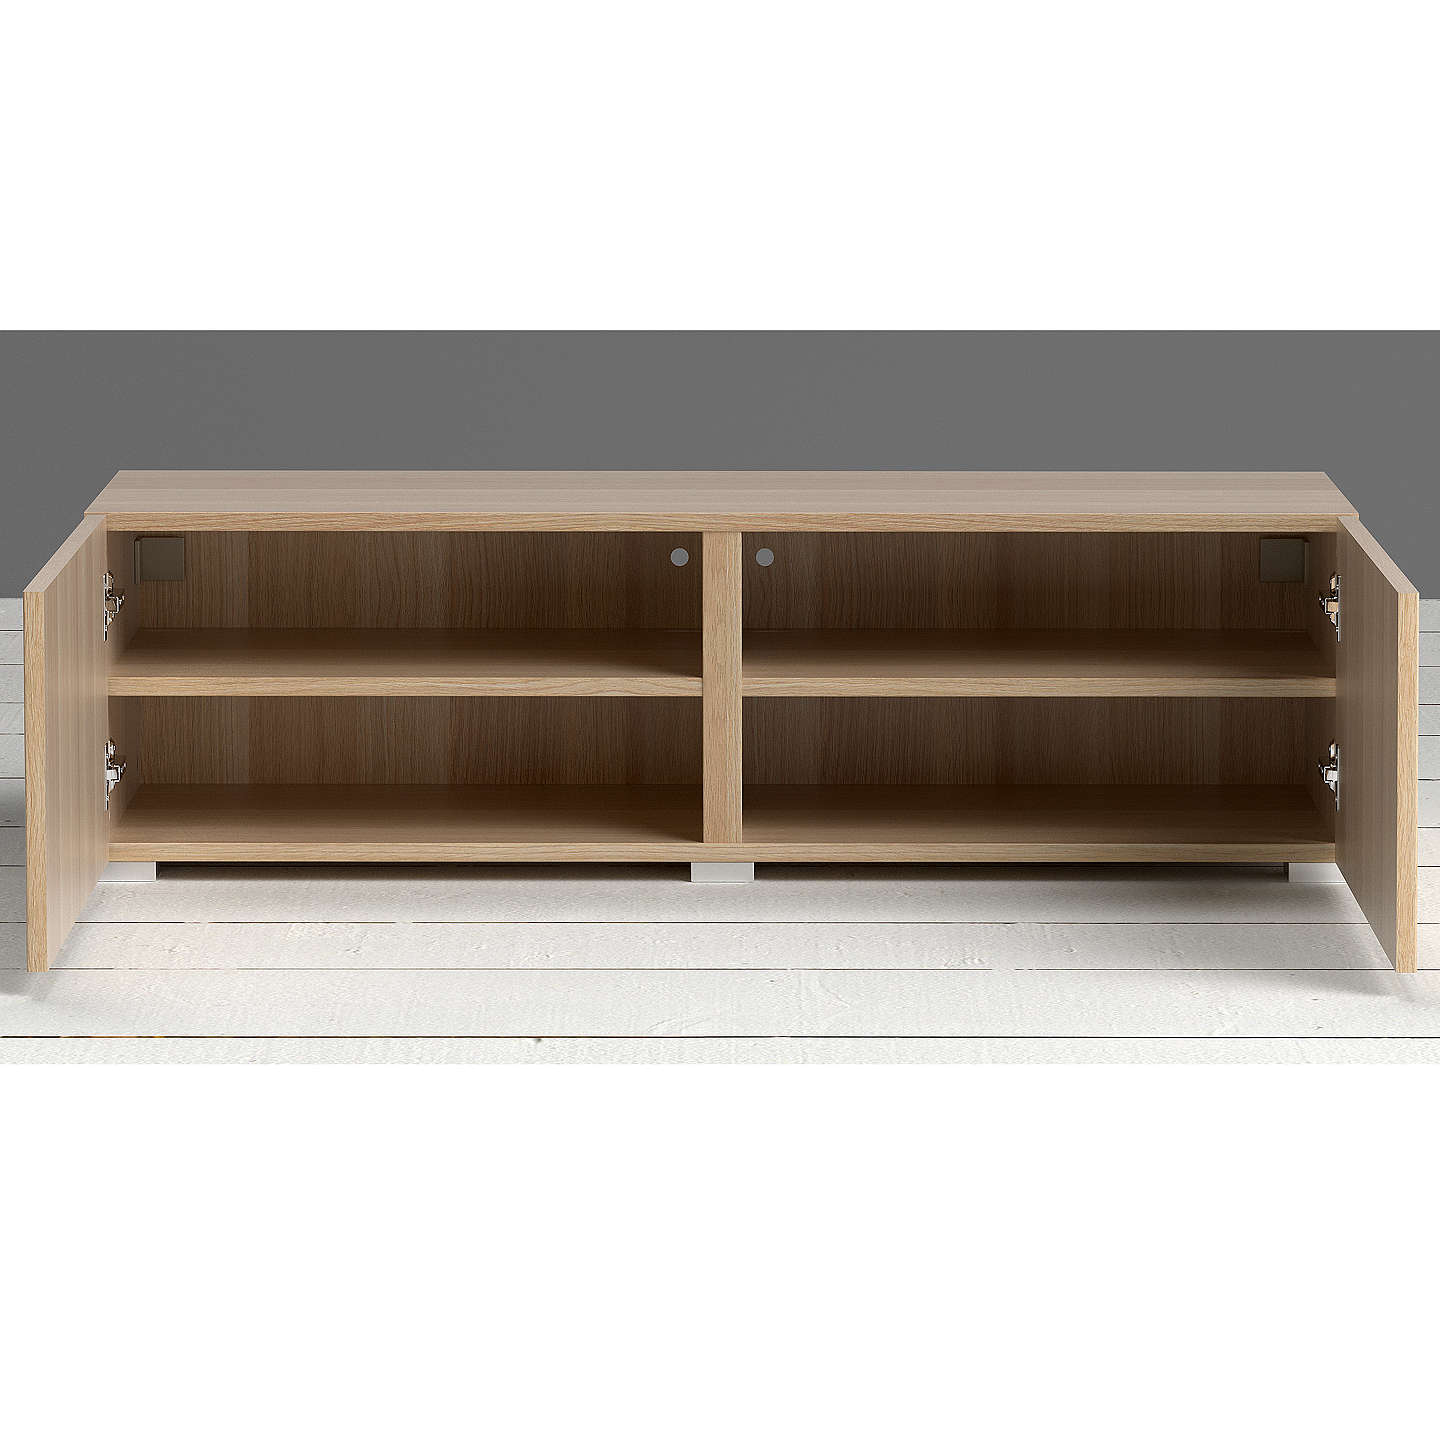 BuyHouse by John Lewis Match Low wide Shelf Unit Oak & Oak Doors Online at johnlewis.com